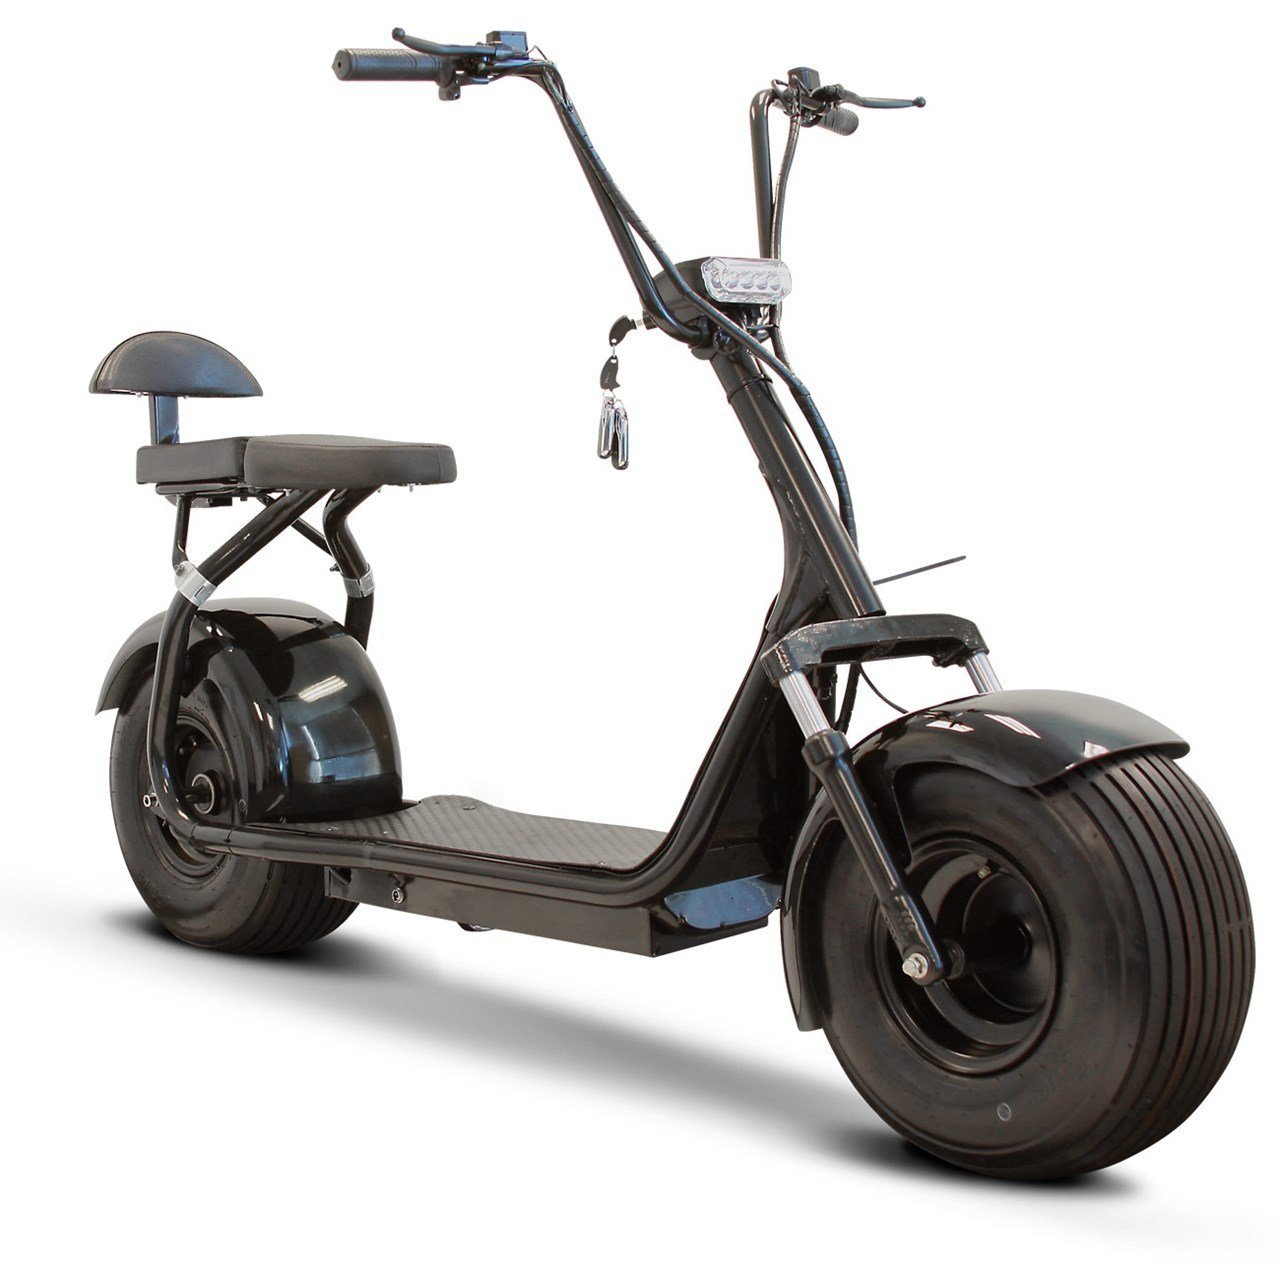 EWheels Ew-08W Fat Tire Electric Scooter Wireless Bluetooth Scooter